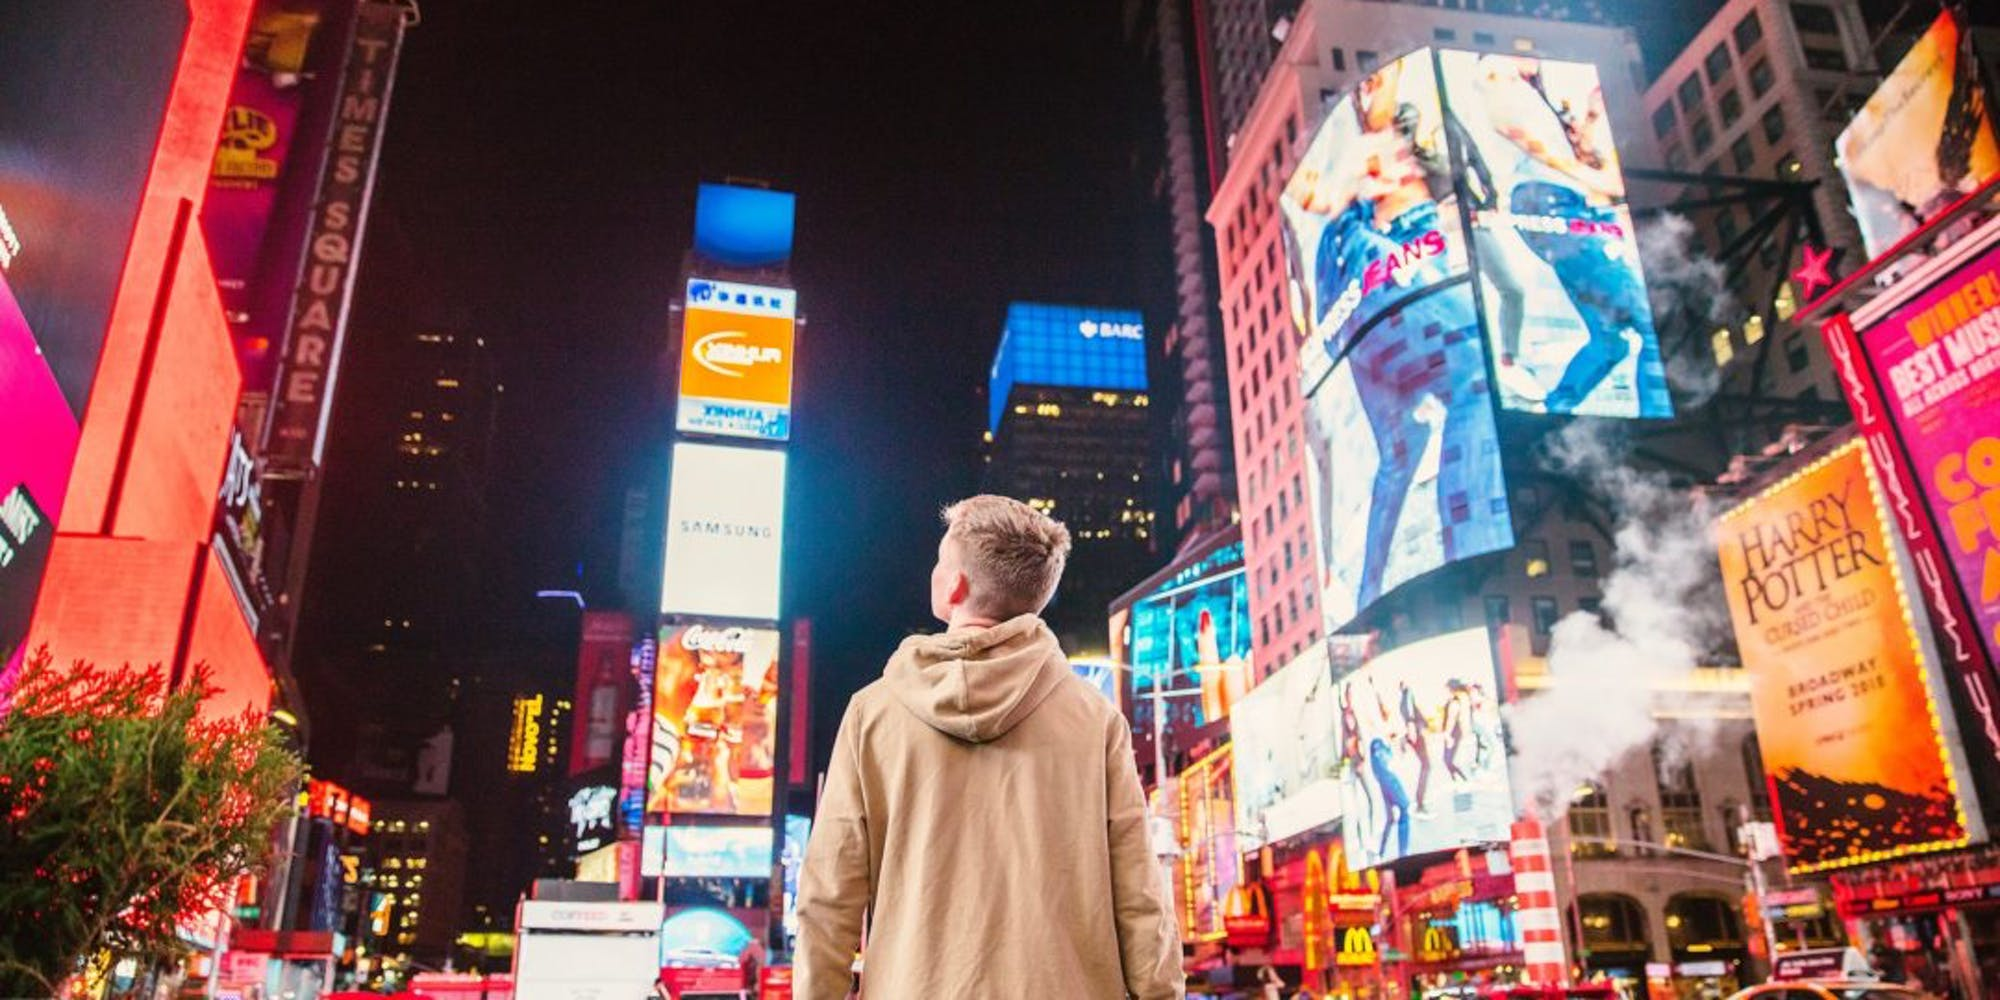 Guy looking out to billboards in the city at night